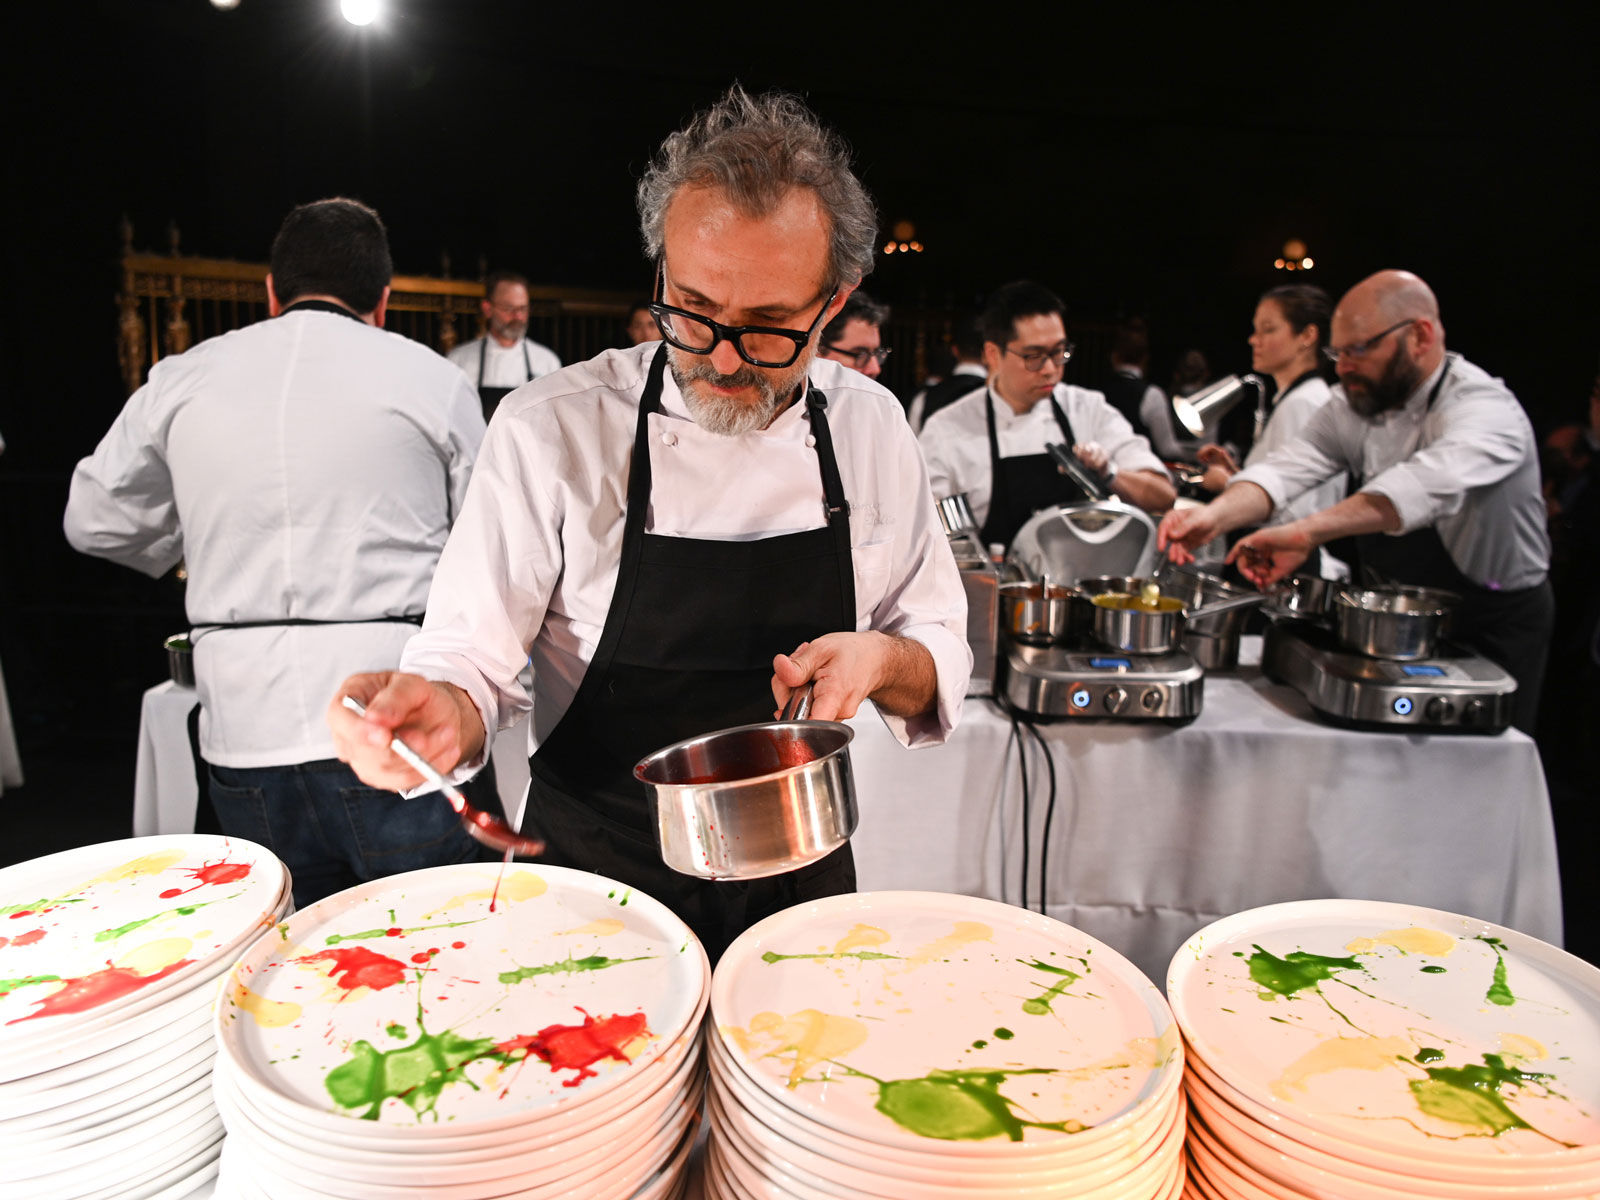 Massimo Bottura, Chrissy Teigen, and Samin Nosrat Make the 2019 Time 100 List